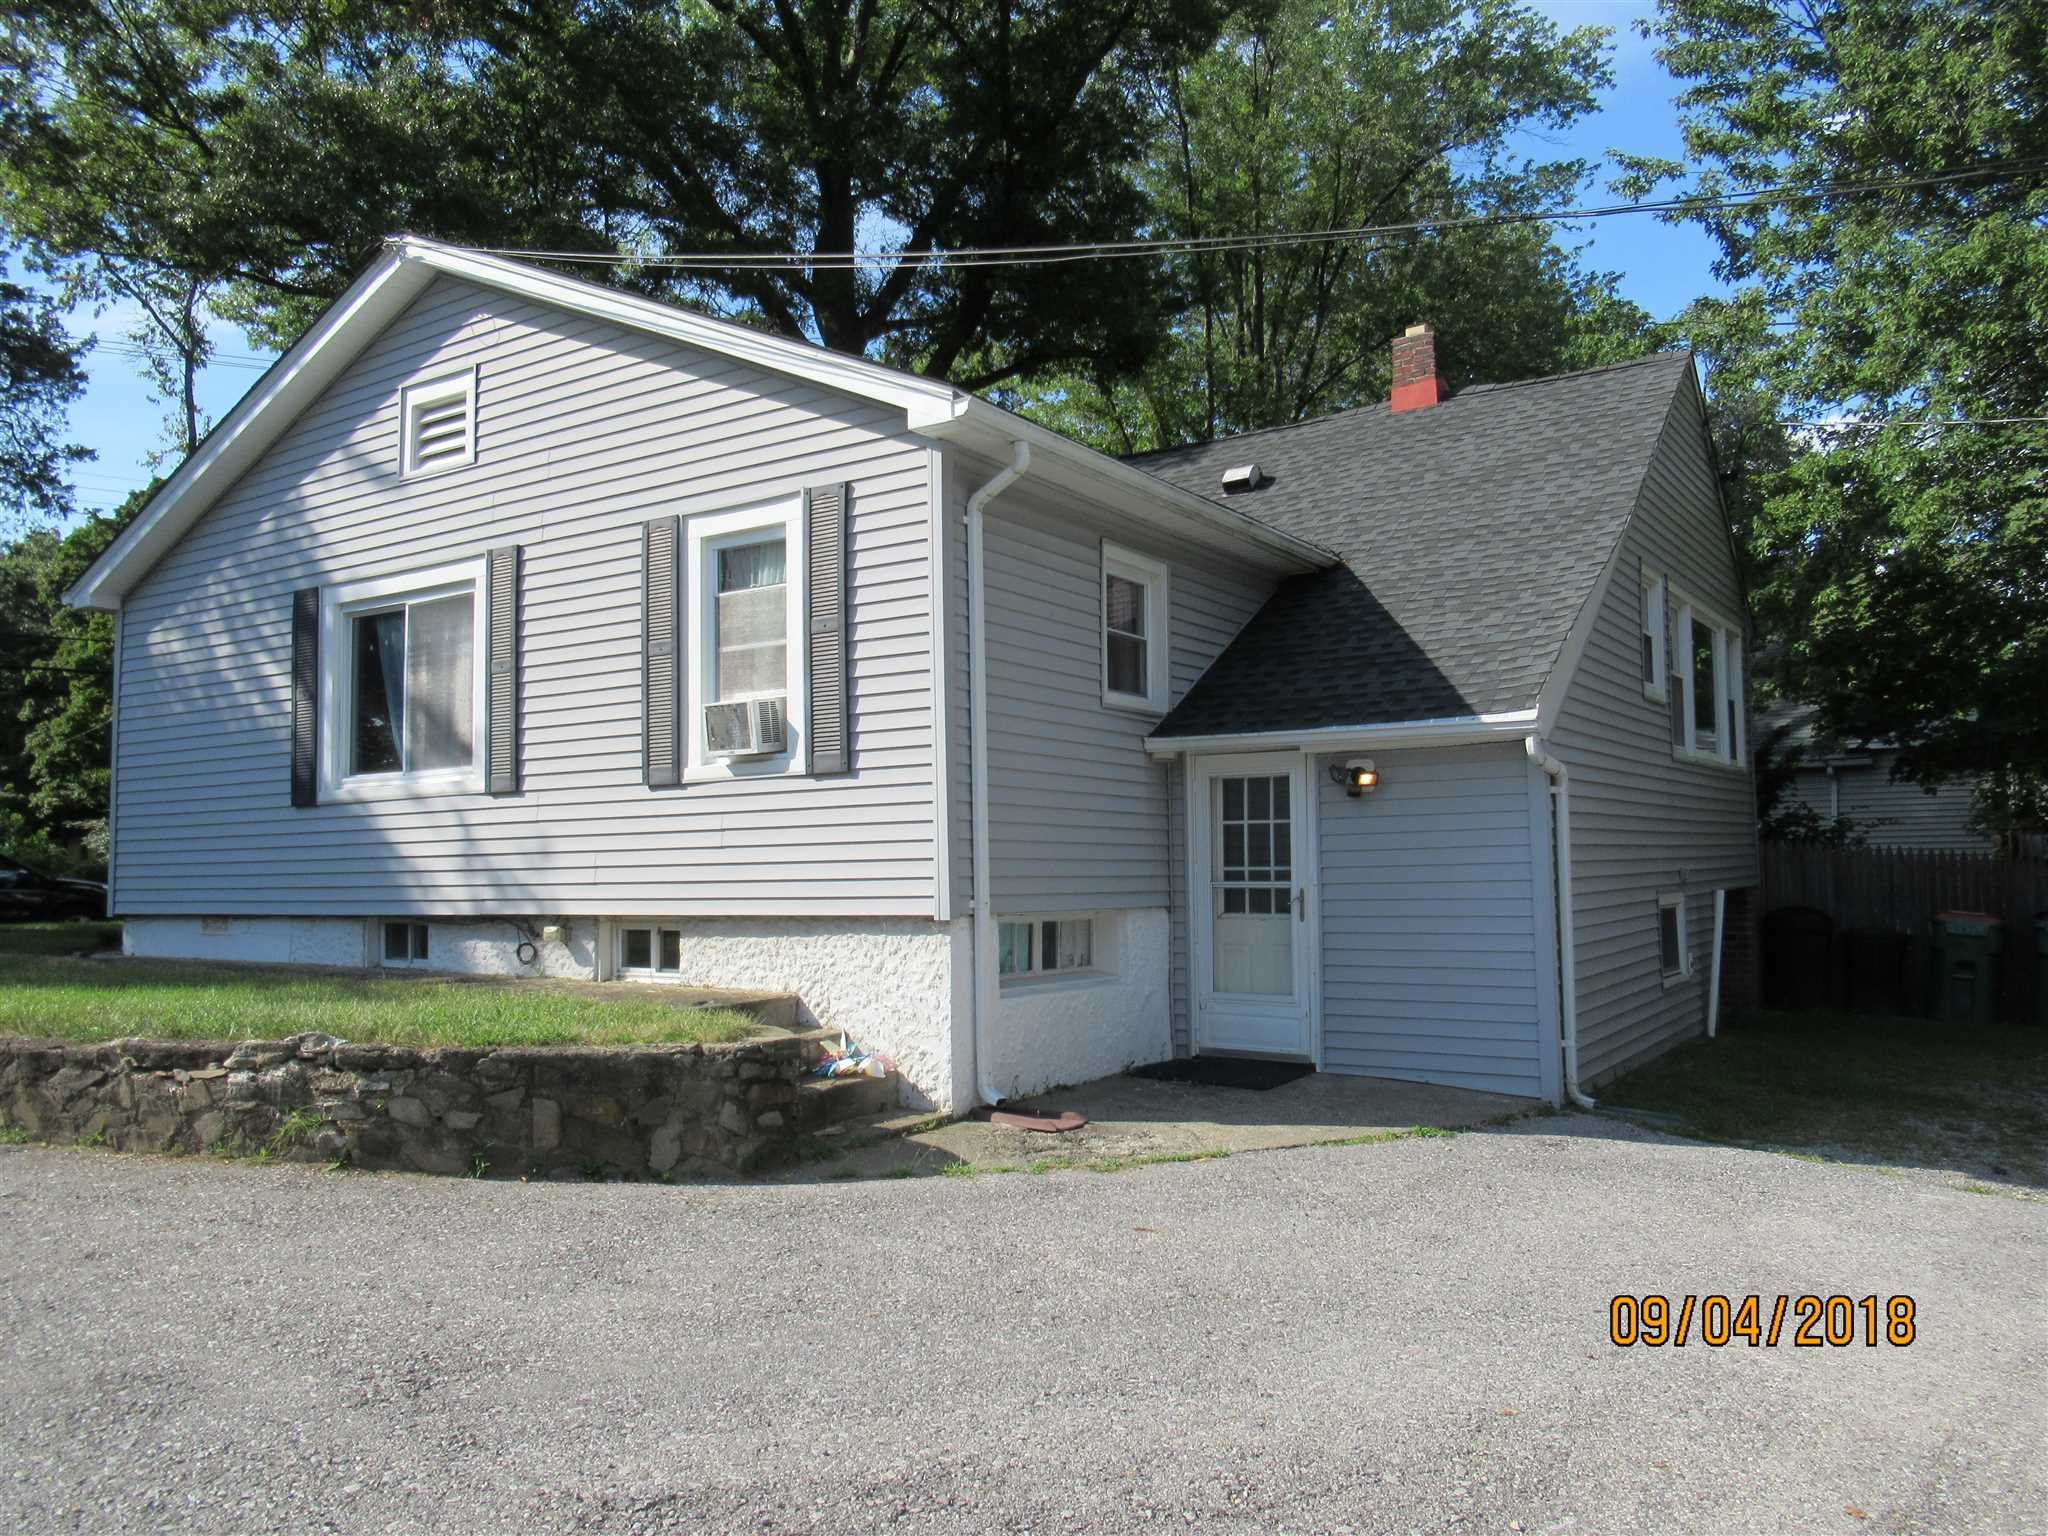 79 OSBORNE HILL ROAD Wappinger, NY 12590 - MLS #: 374885